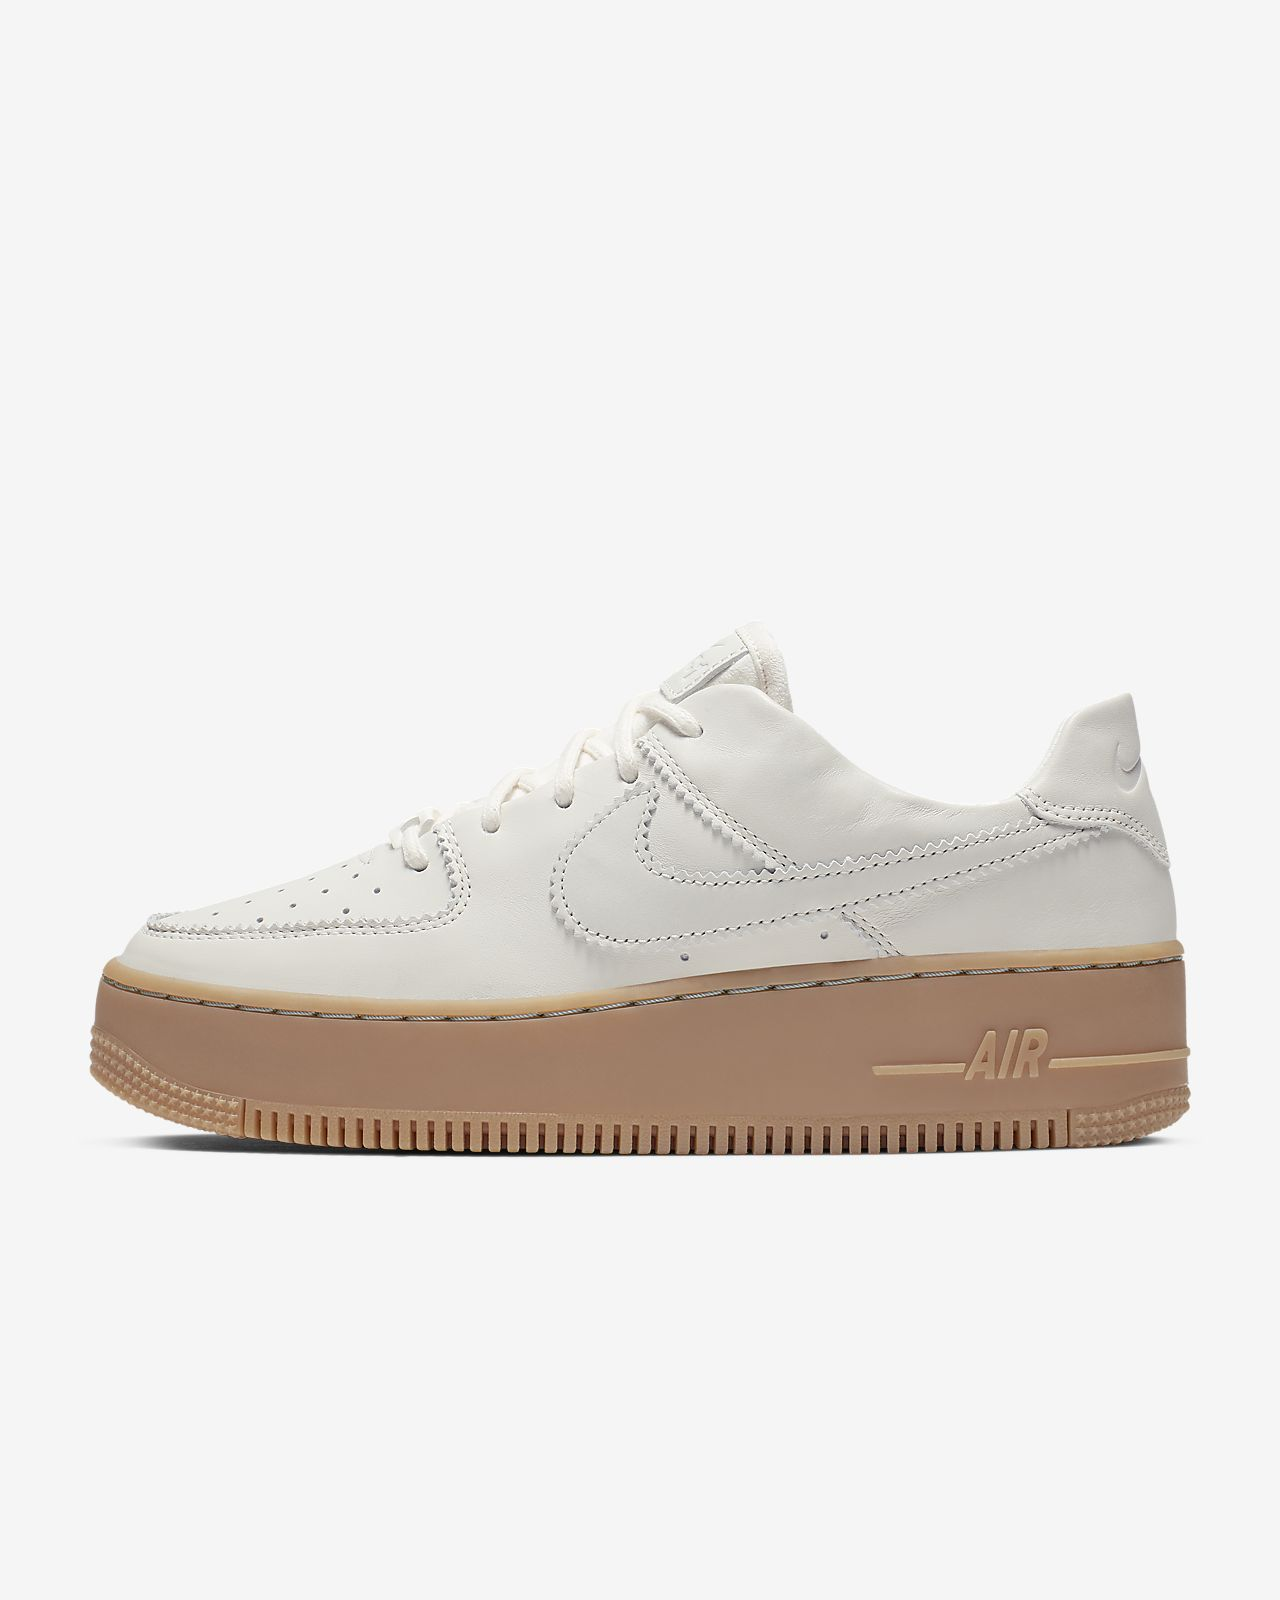 0b1a7c96cd5 Nike Air Force 1 Sage Low LX Women s Shoe. Nike.com GB